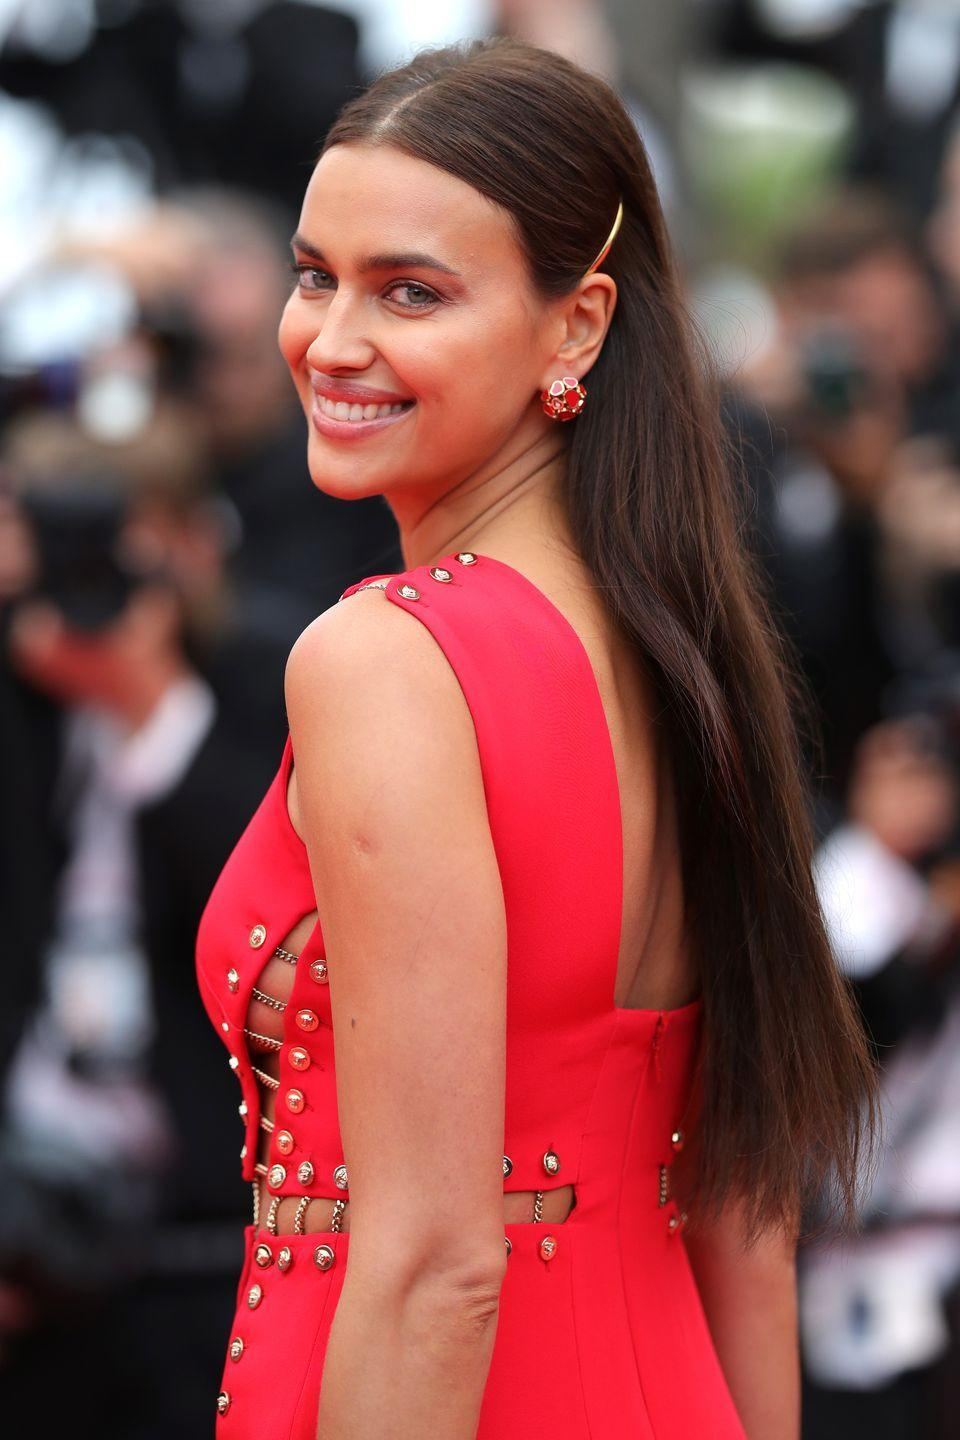 """<p><strong>Born</strong>: Irina Shaykhlislamov</p><p>Irina Shayk's real last name is Shaykhlislamov, as <em><a href=""""https://observer.com/2010/09/hot-supermodel-shayks-perry-street-condo/"""" rel=""""nofollow noopener"""" target=""""_blank"""" data-ylk=""""slk:Observer"""" class=""""link rapid-noclick-resp"""">Observer</a></em> reported after catching her legal name on the deed of her Manhattan apartment. </p>"""